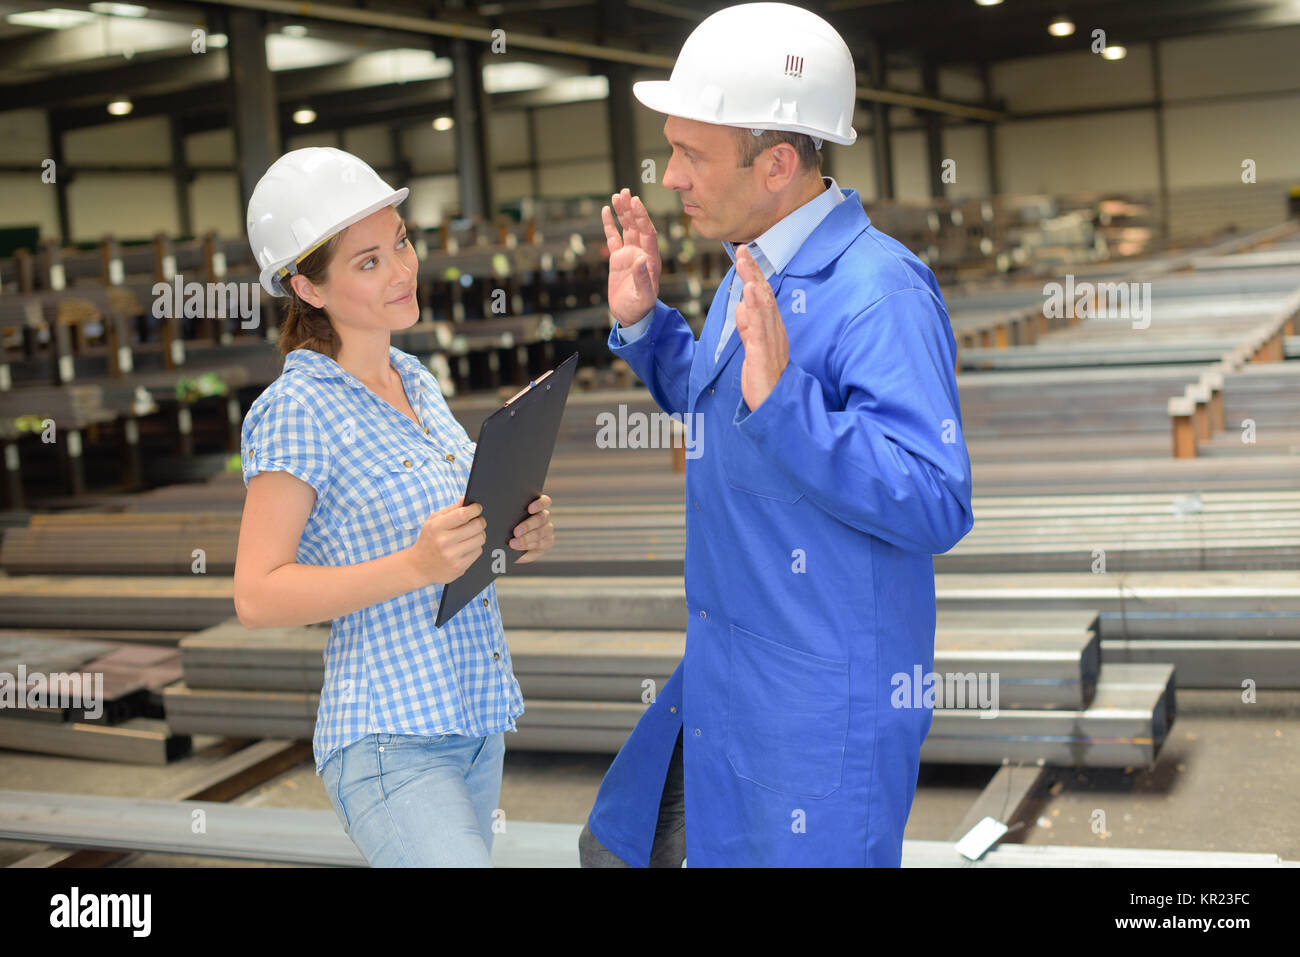 workers having a conversation - Stock Image